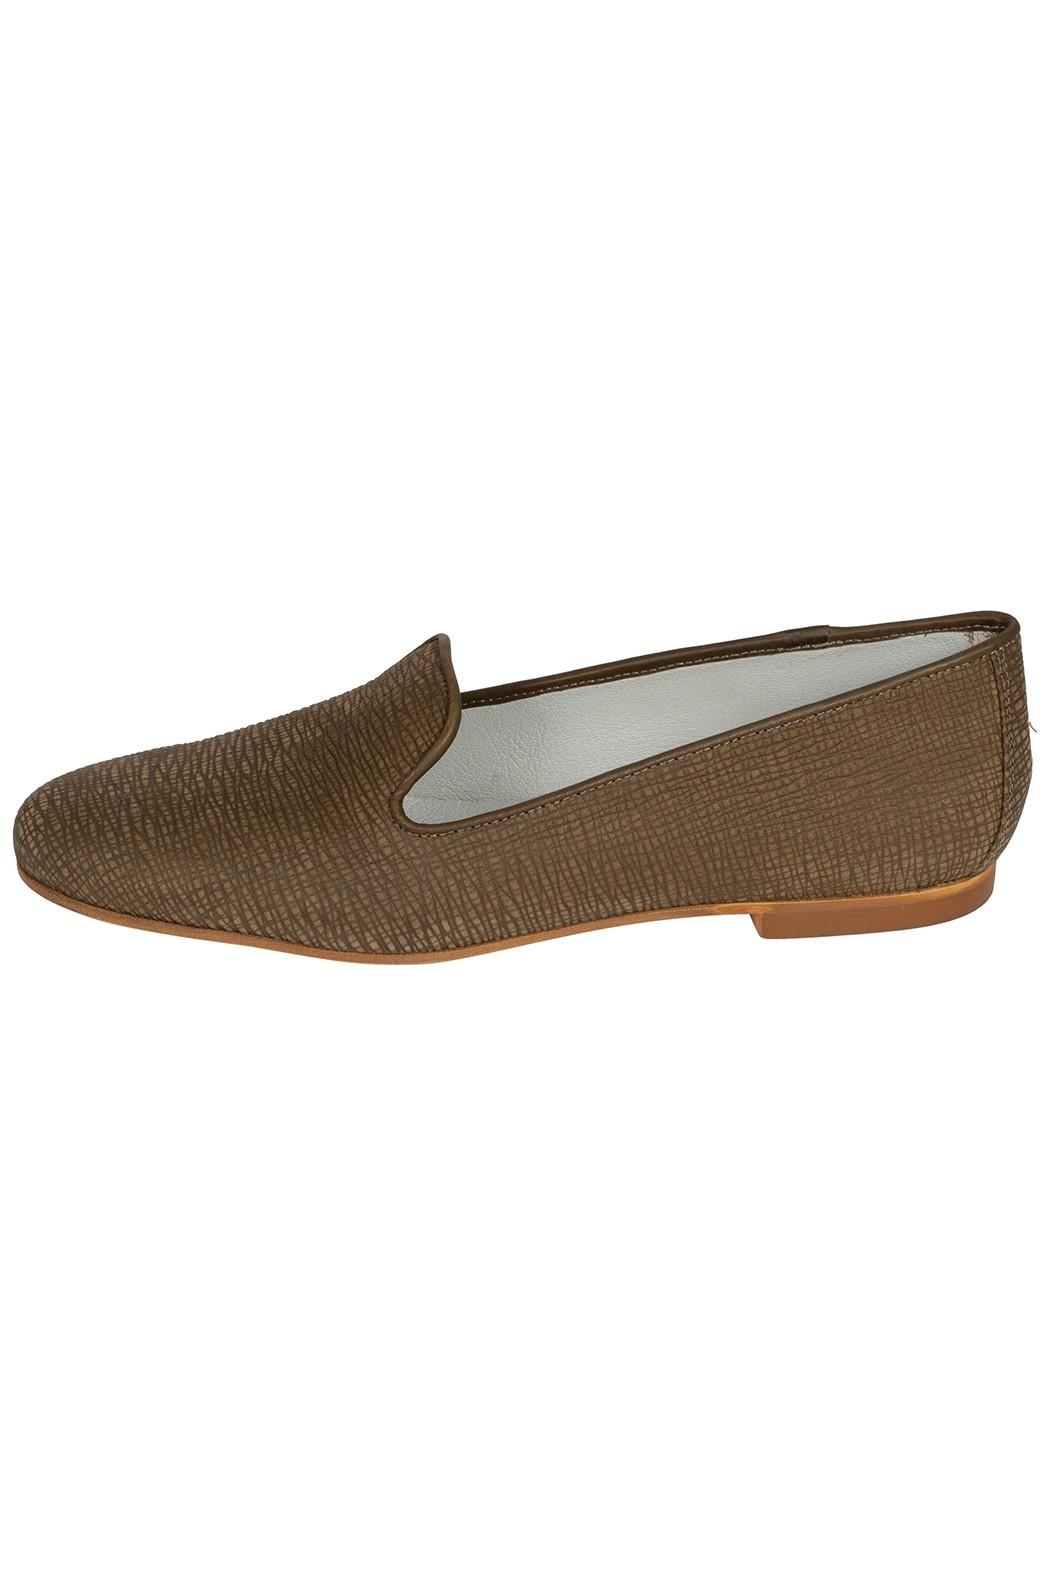 Pascucci Leather Olive-Green Smoking-Slipper - Main Image